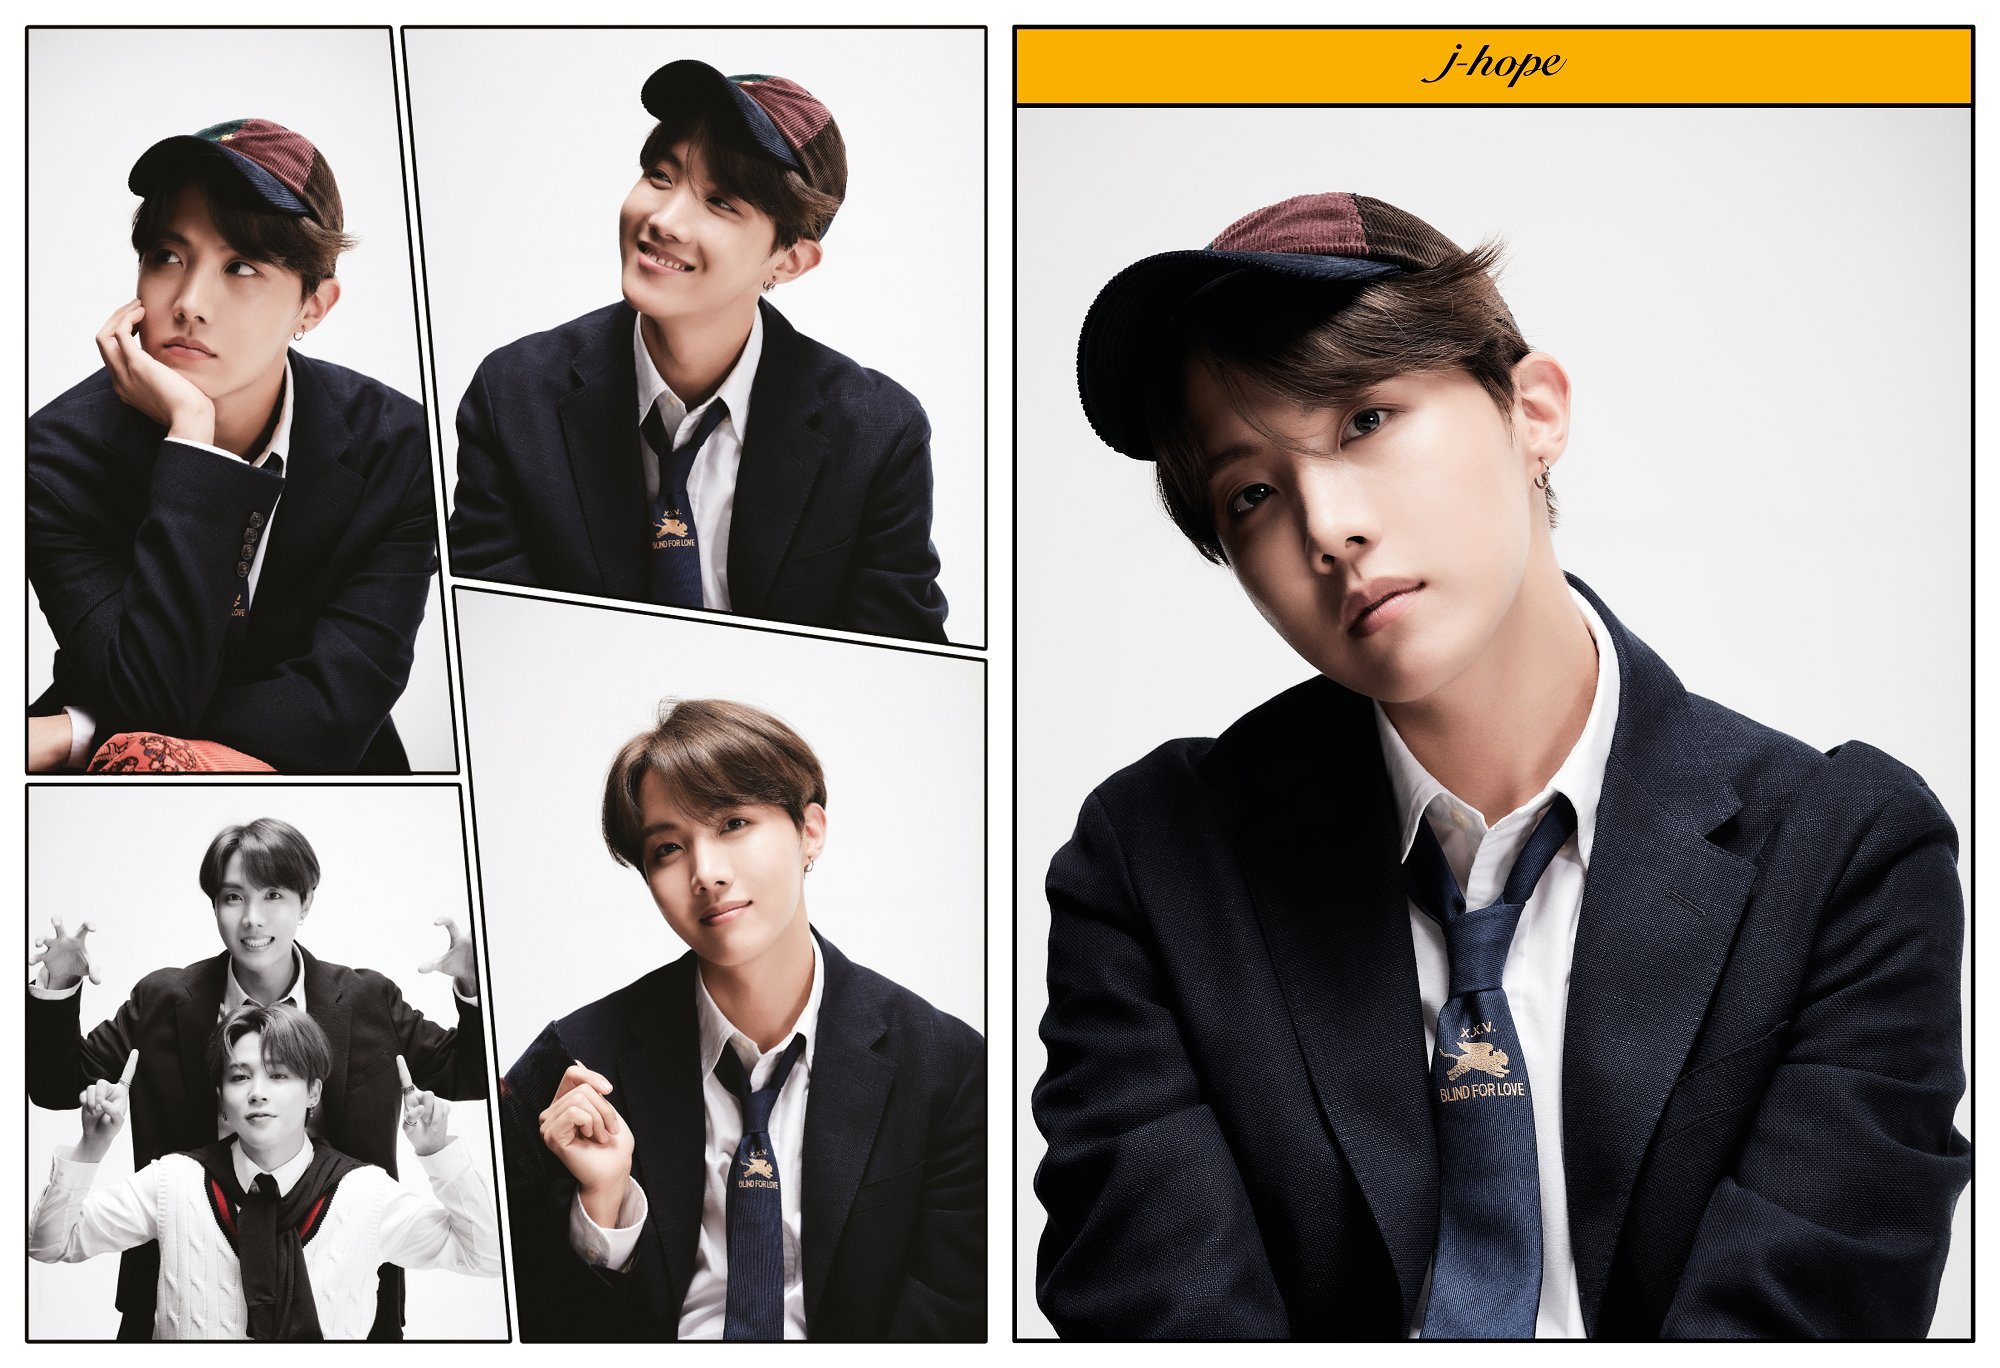 J-Hope BTS Rilis Konsep Foto Keempat untuk Album Map of The Soul: 7 - Definition of Happiness and Youth © Big Hit Entertainment